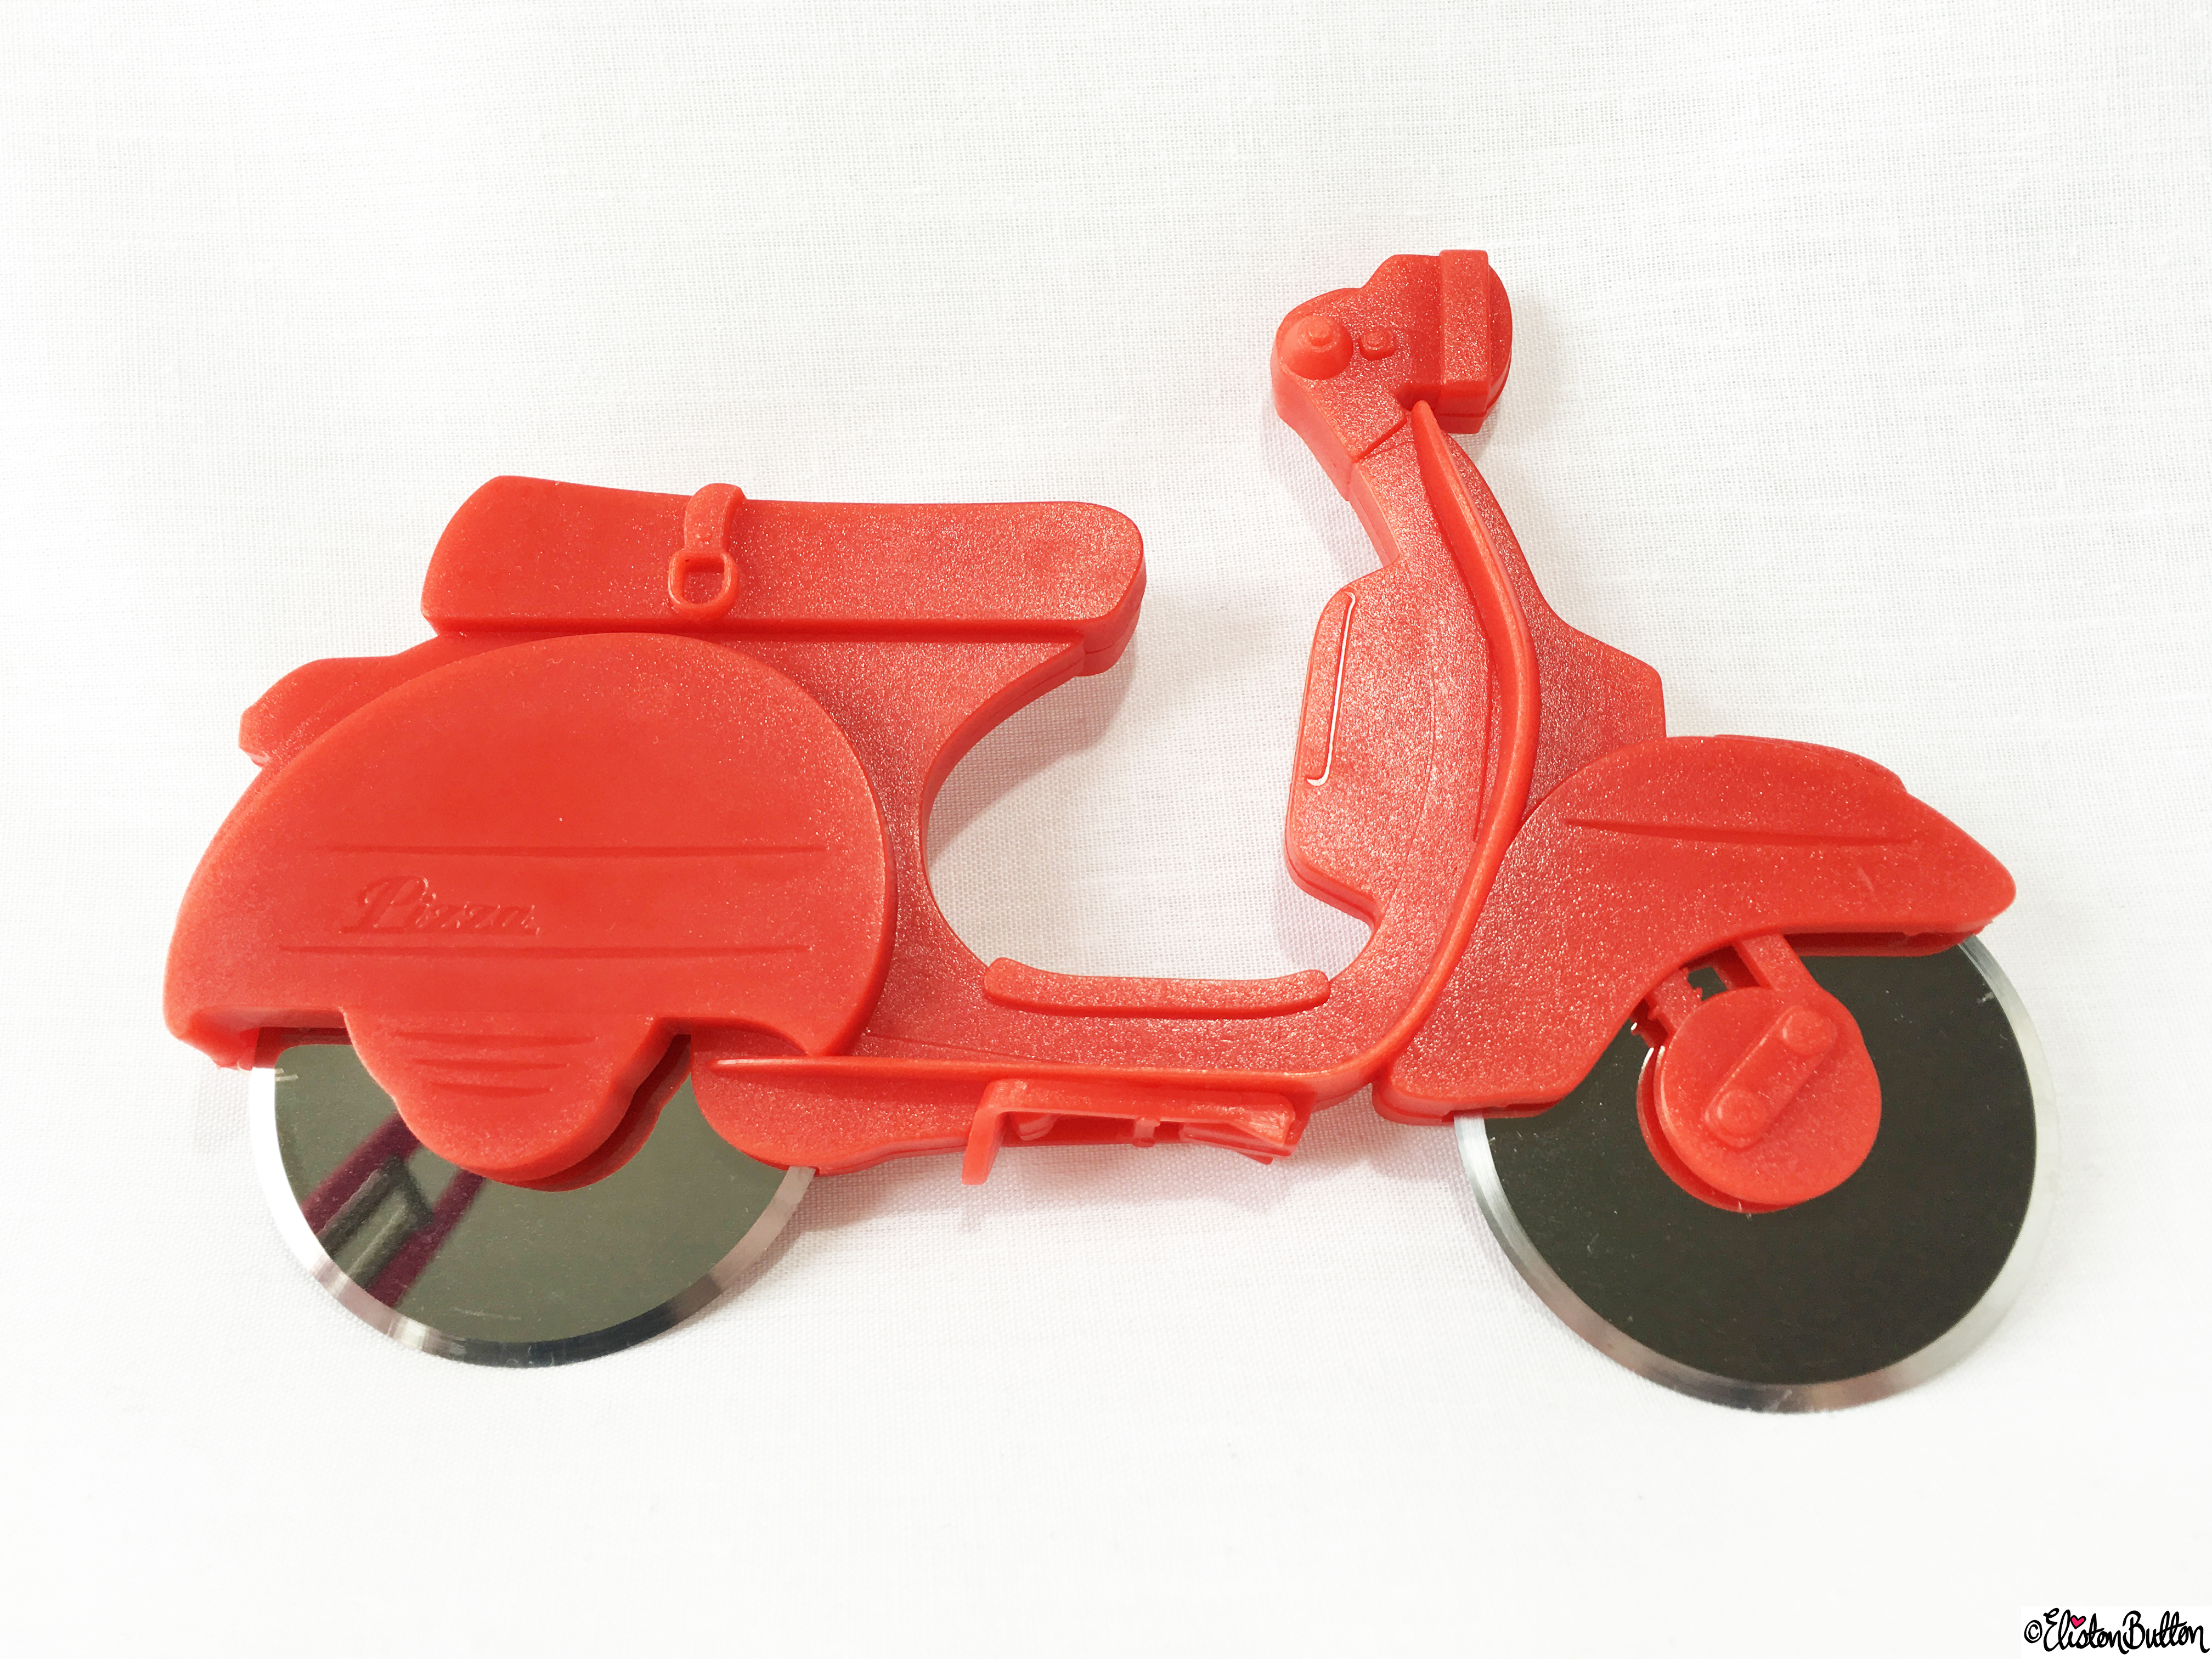 Red Vespa Pizza Cutter - Tiger and TKMaxx Excitement! at www.elistonbutton.com - Eliston Button - That Crafty Kid – Art, Design, Craft & Adventure.